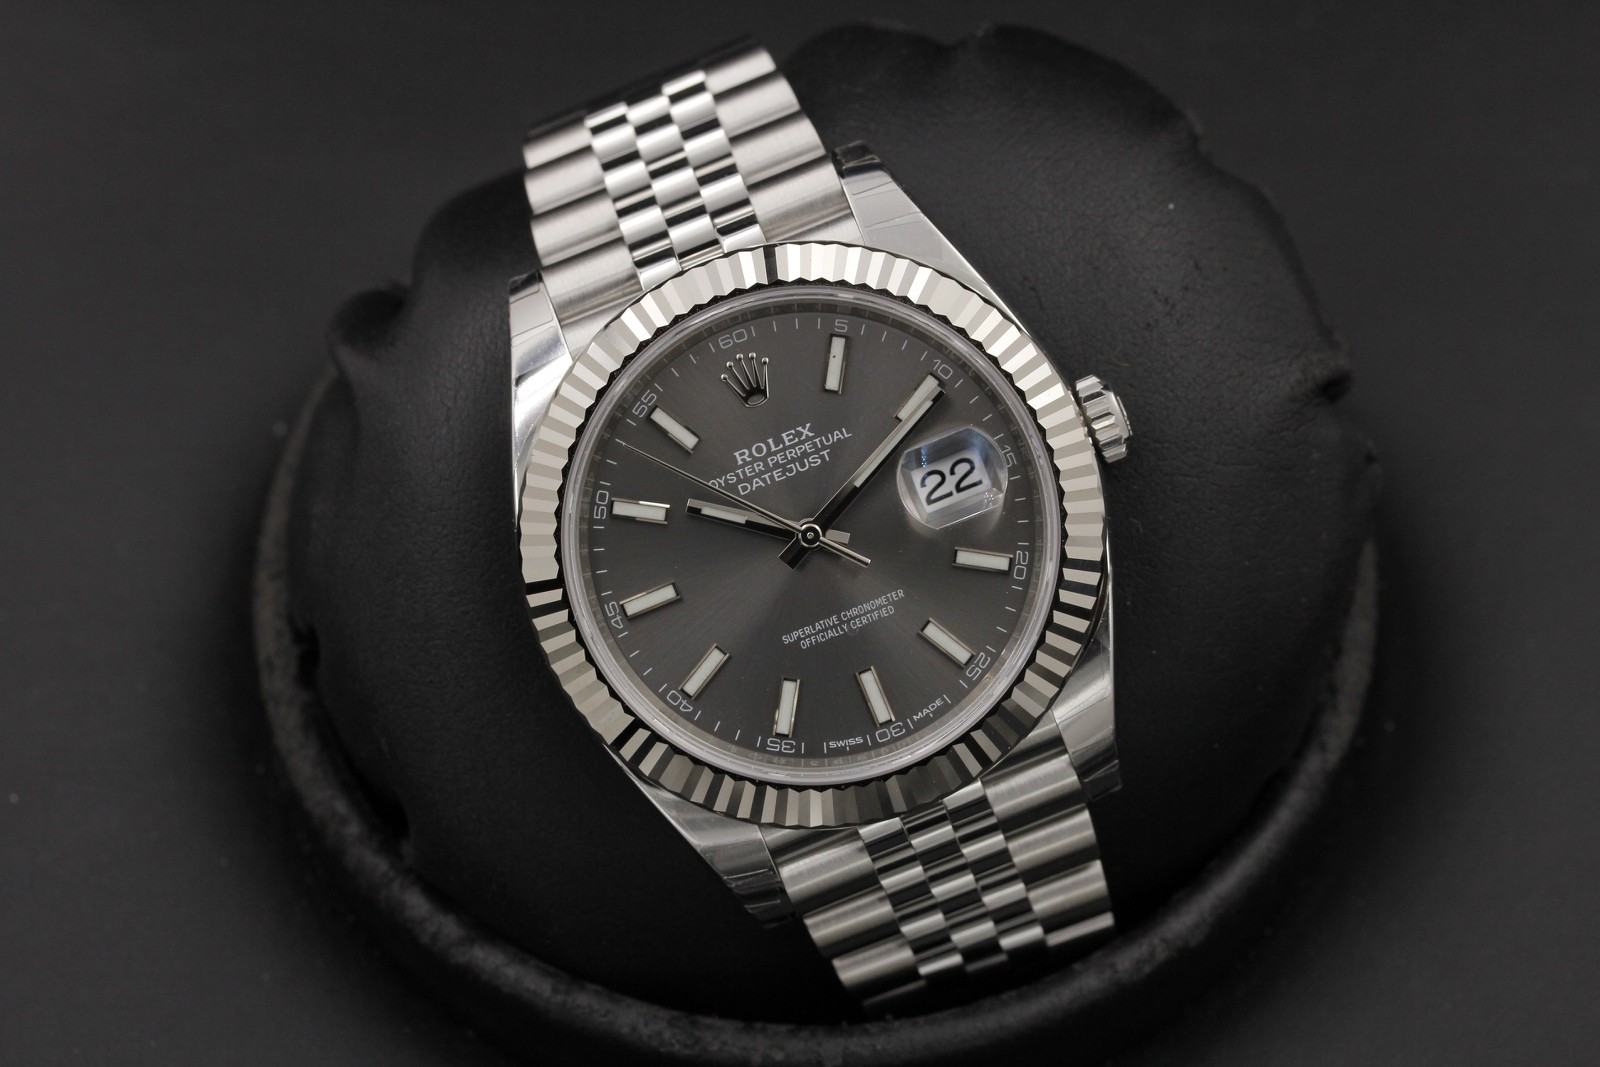 Omega Authorized Dealer >> Rolex Datejust 41 126334 Stainless Steel - OCWatchGuy